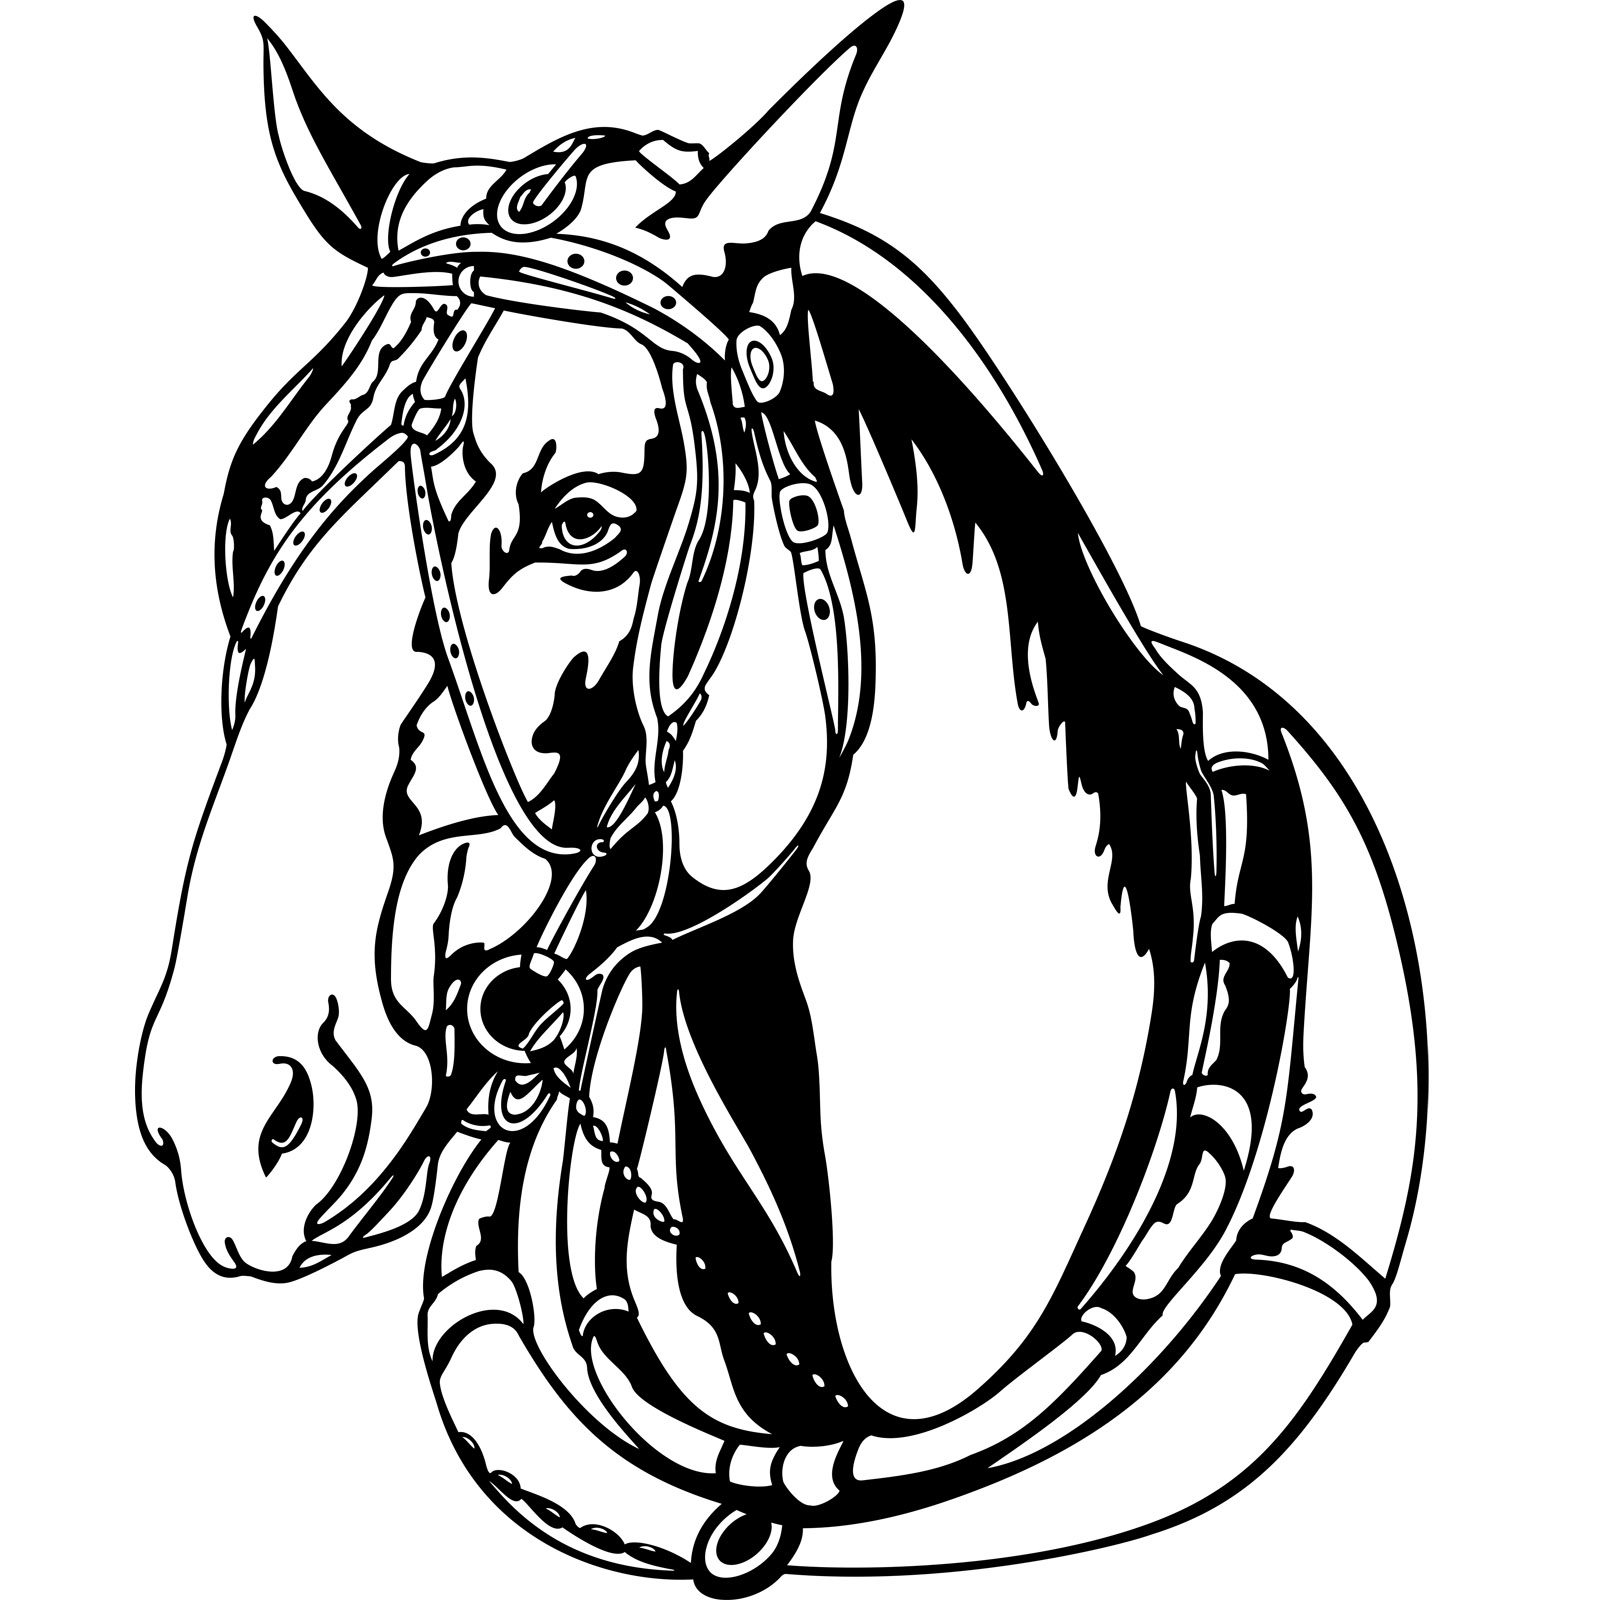 vehicle diagram clip art retort stand and clamp harness for horses clipart - clipground